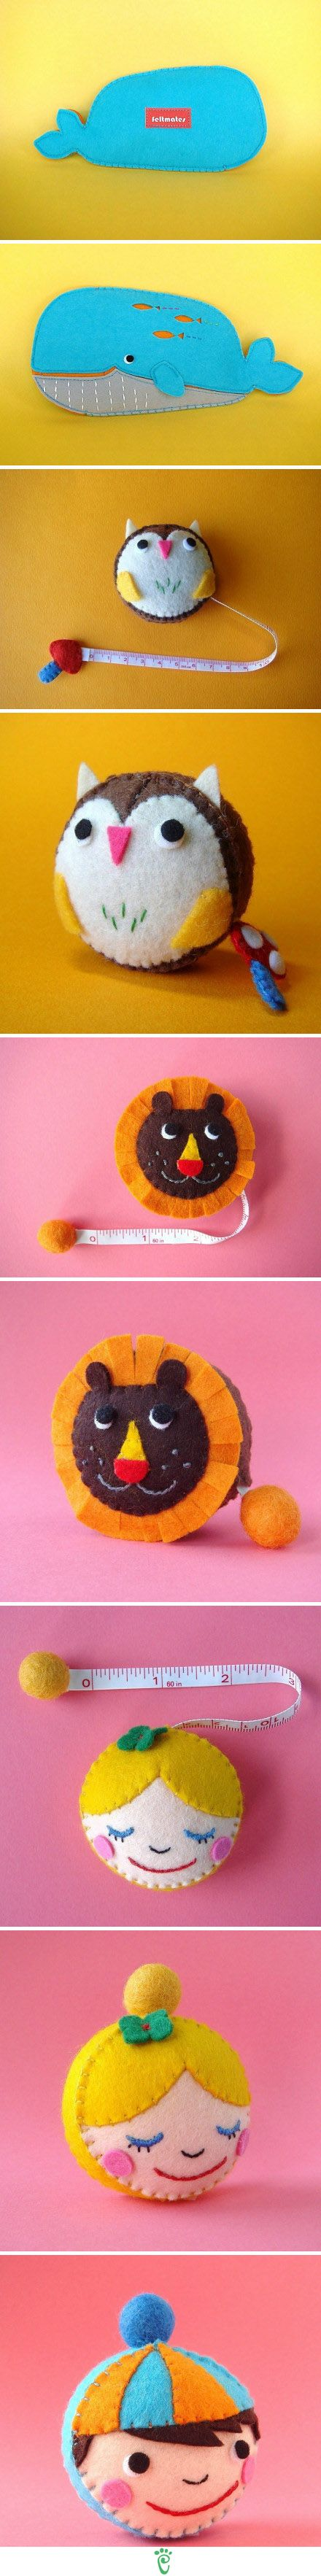 I didn't even know I needed this till now...#Felt measuring tape cover #DIY